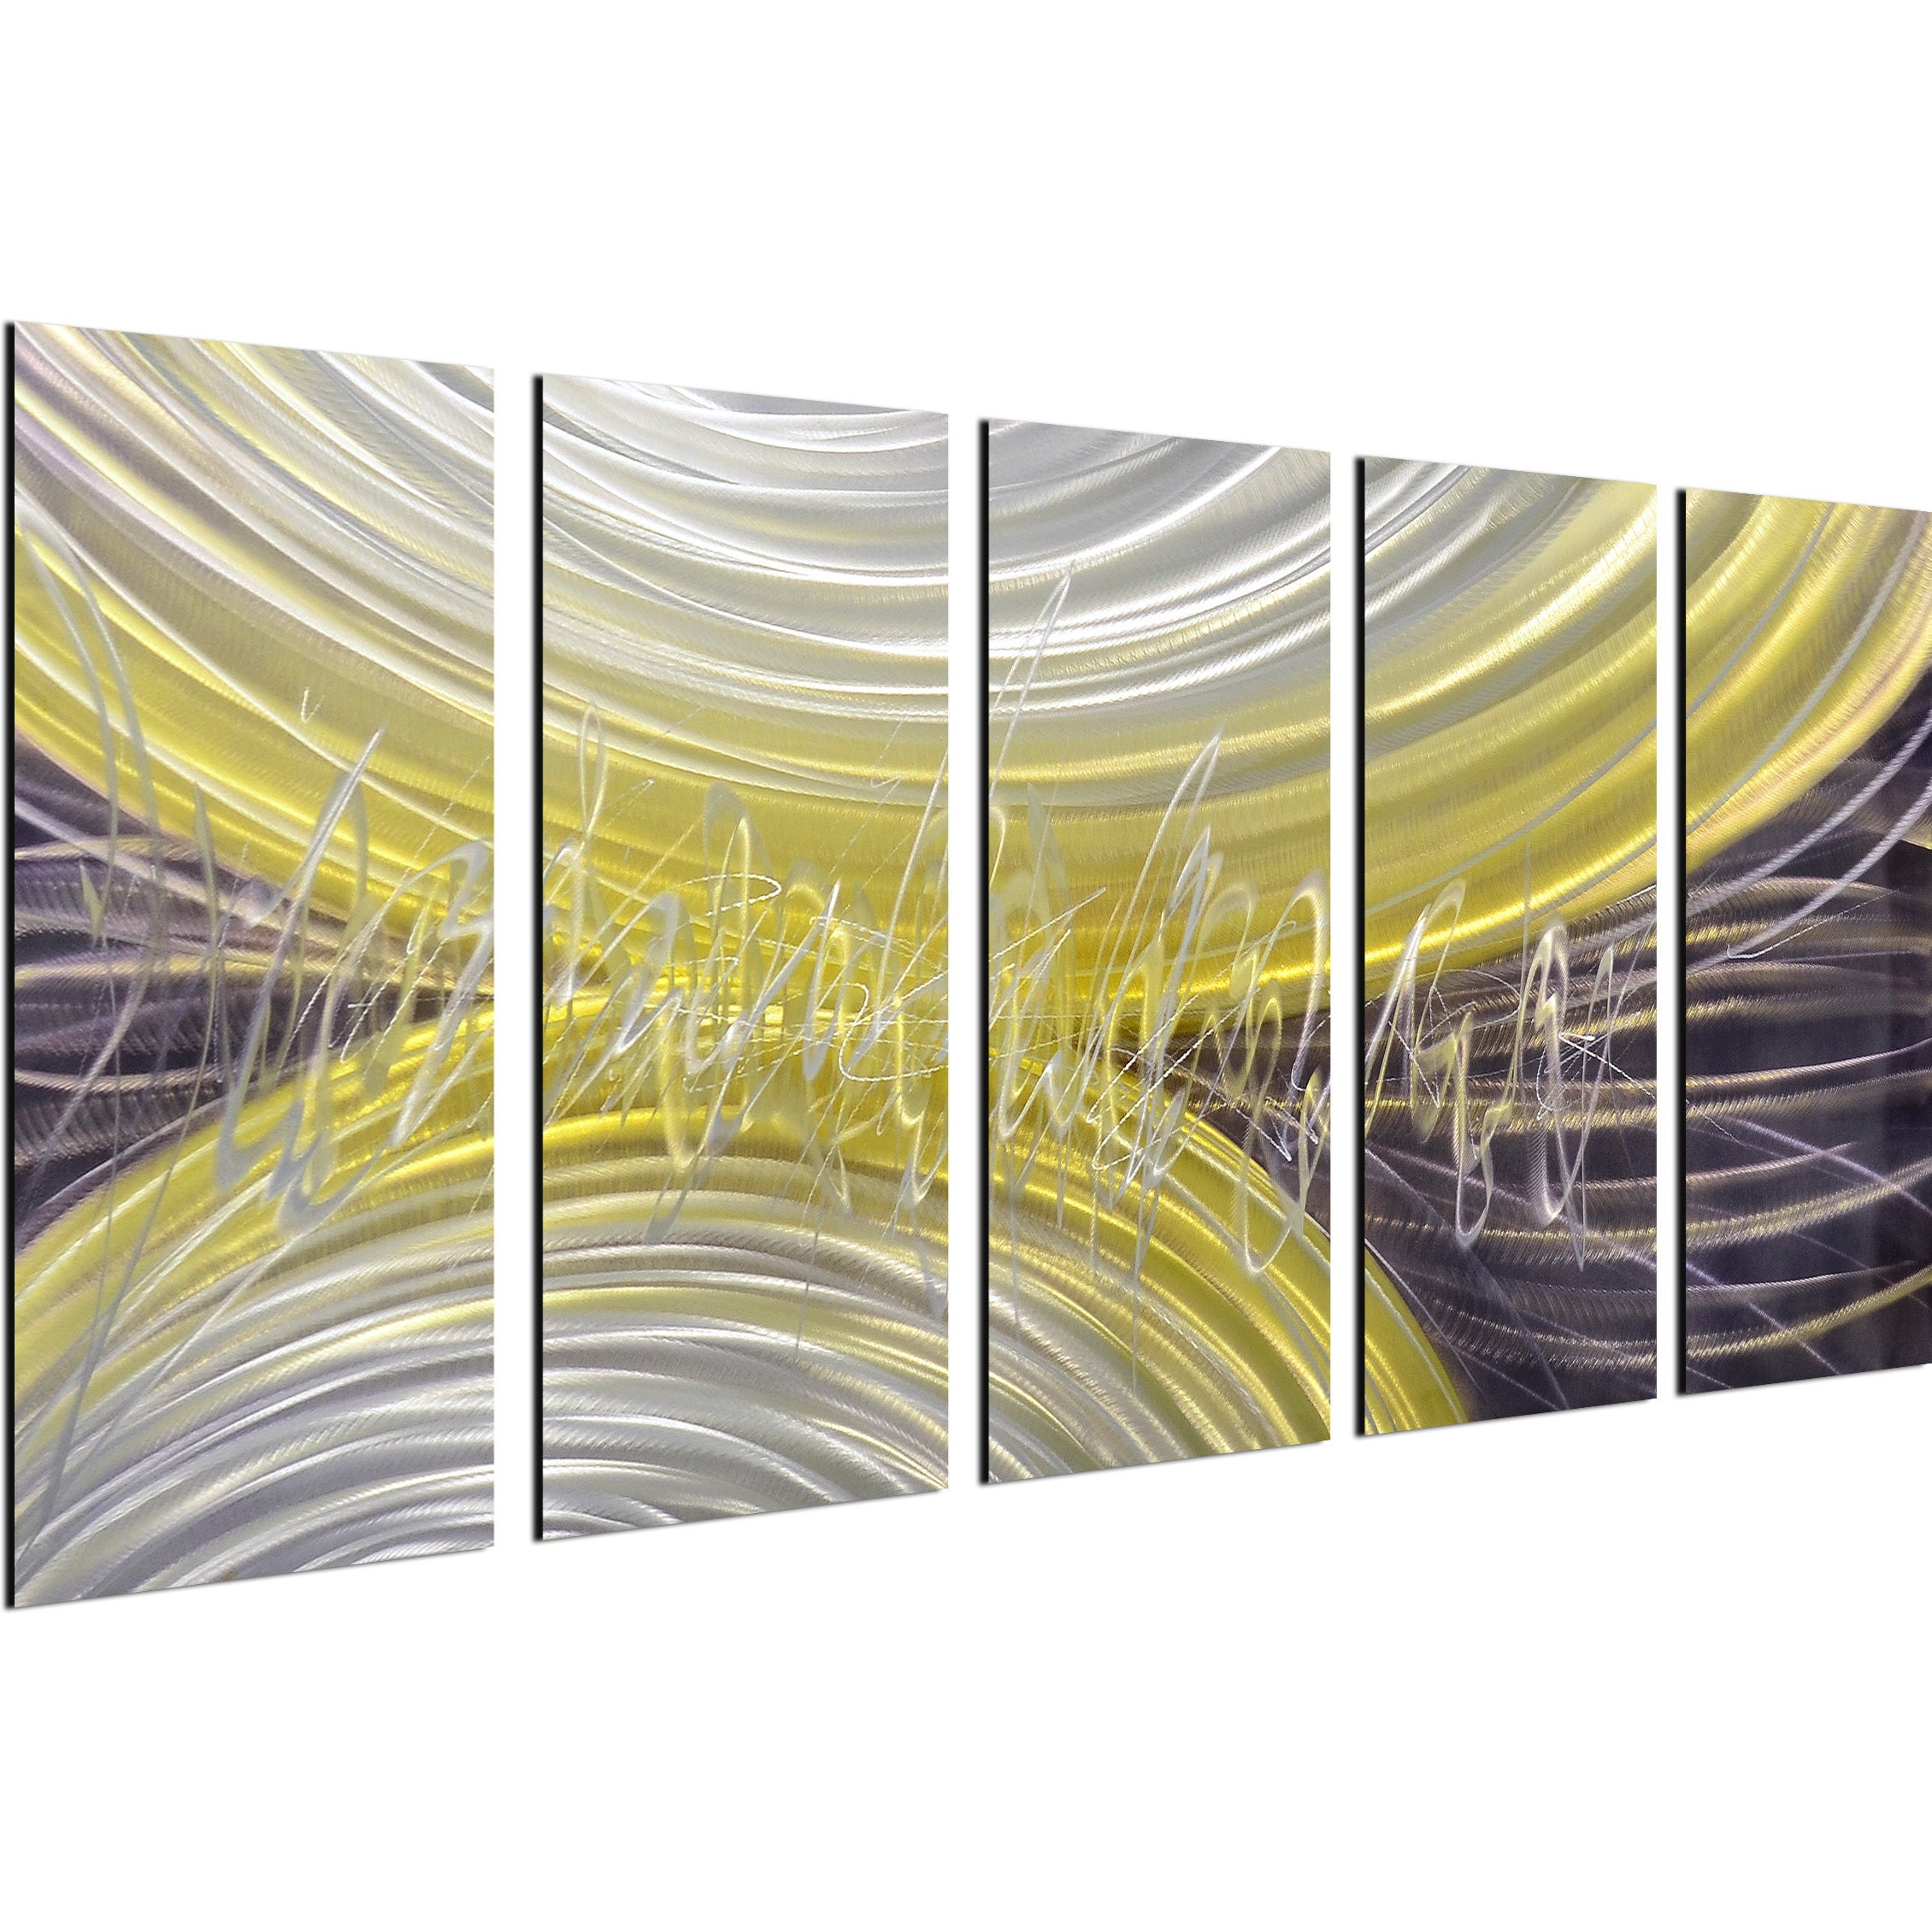 Shop Rings of magnetism 5 Piece Handmade Modern Metal Wall Art ...